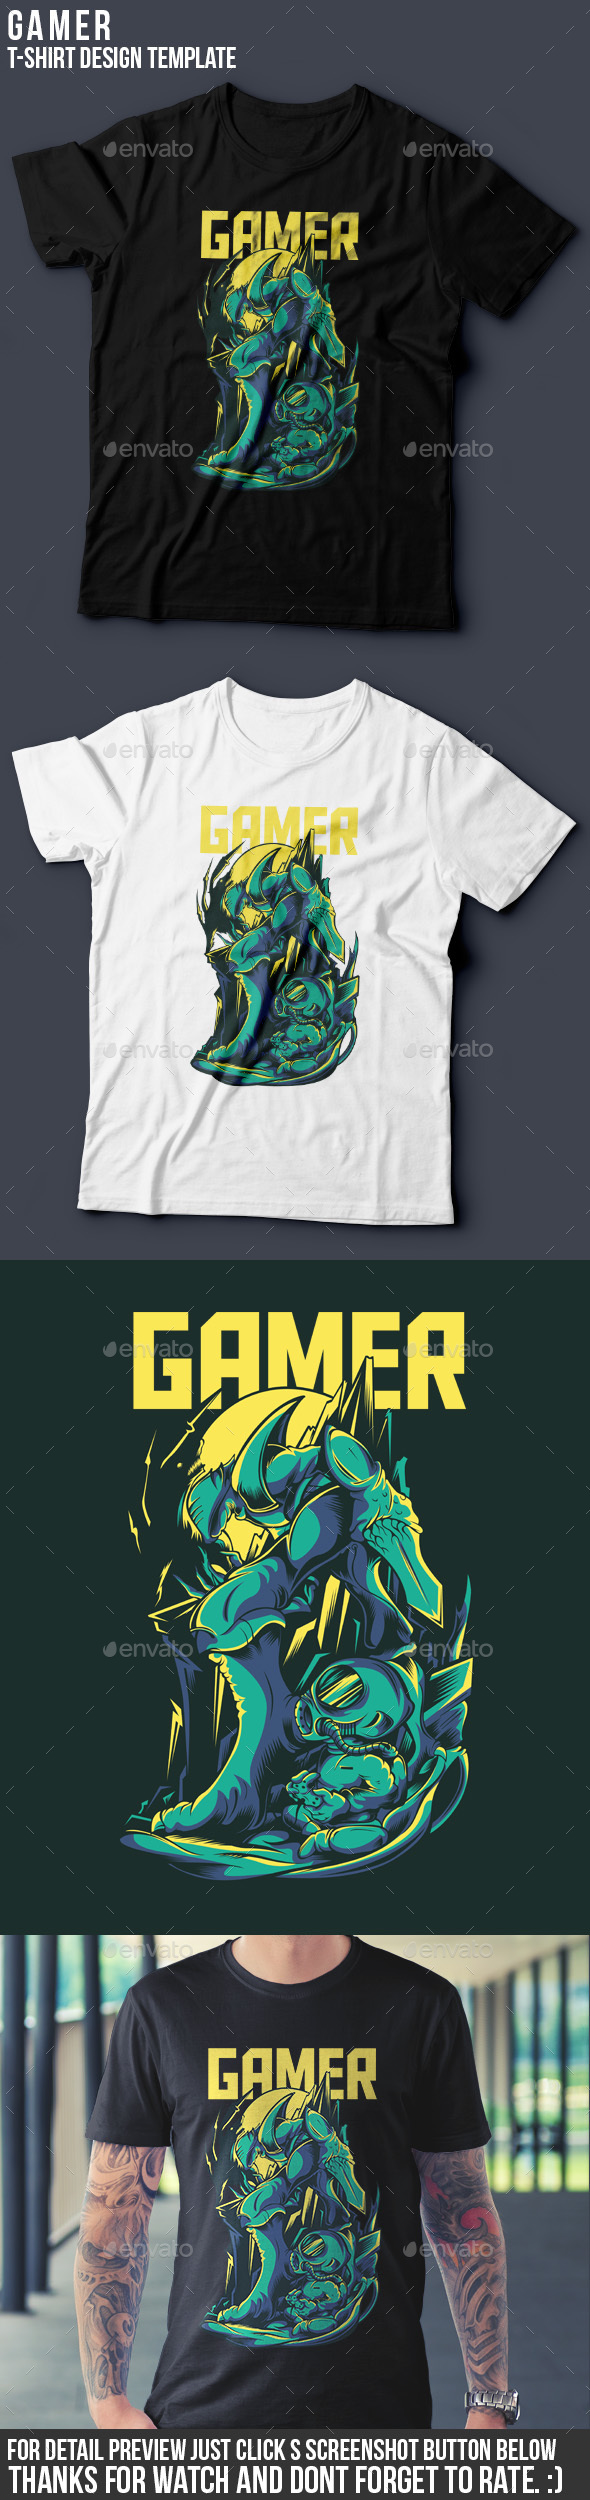 Gamer - Funny Designs